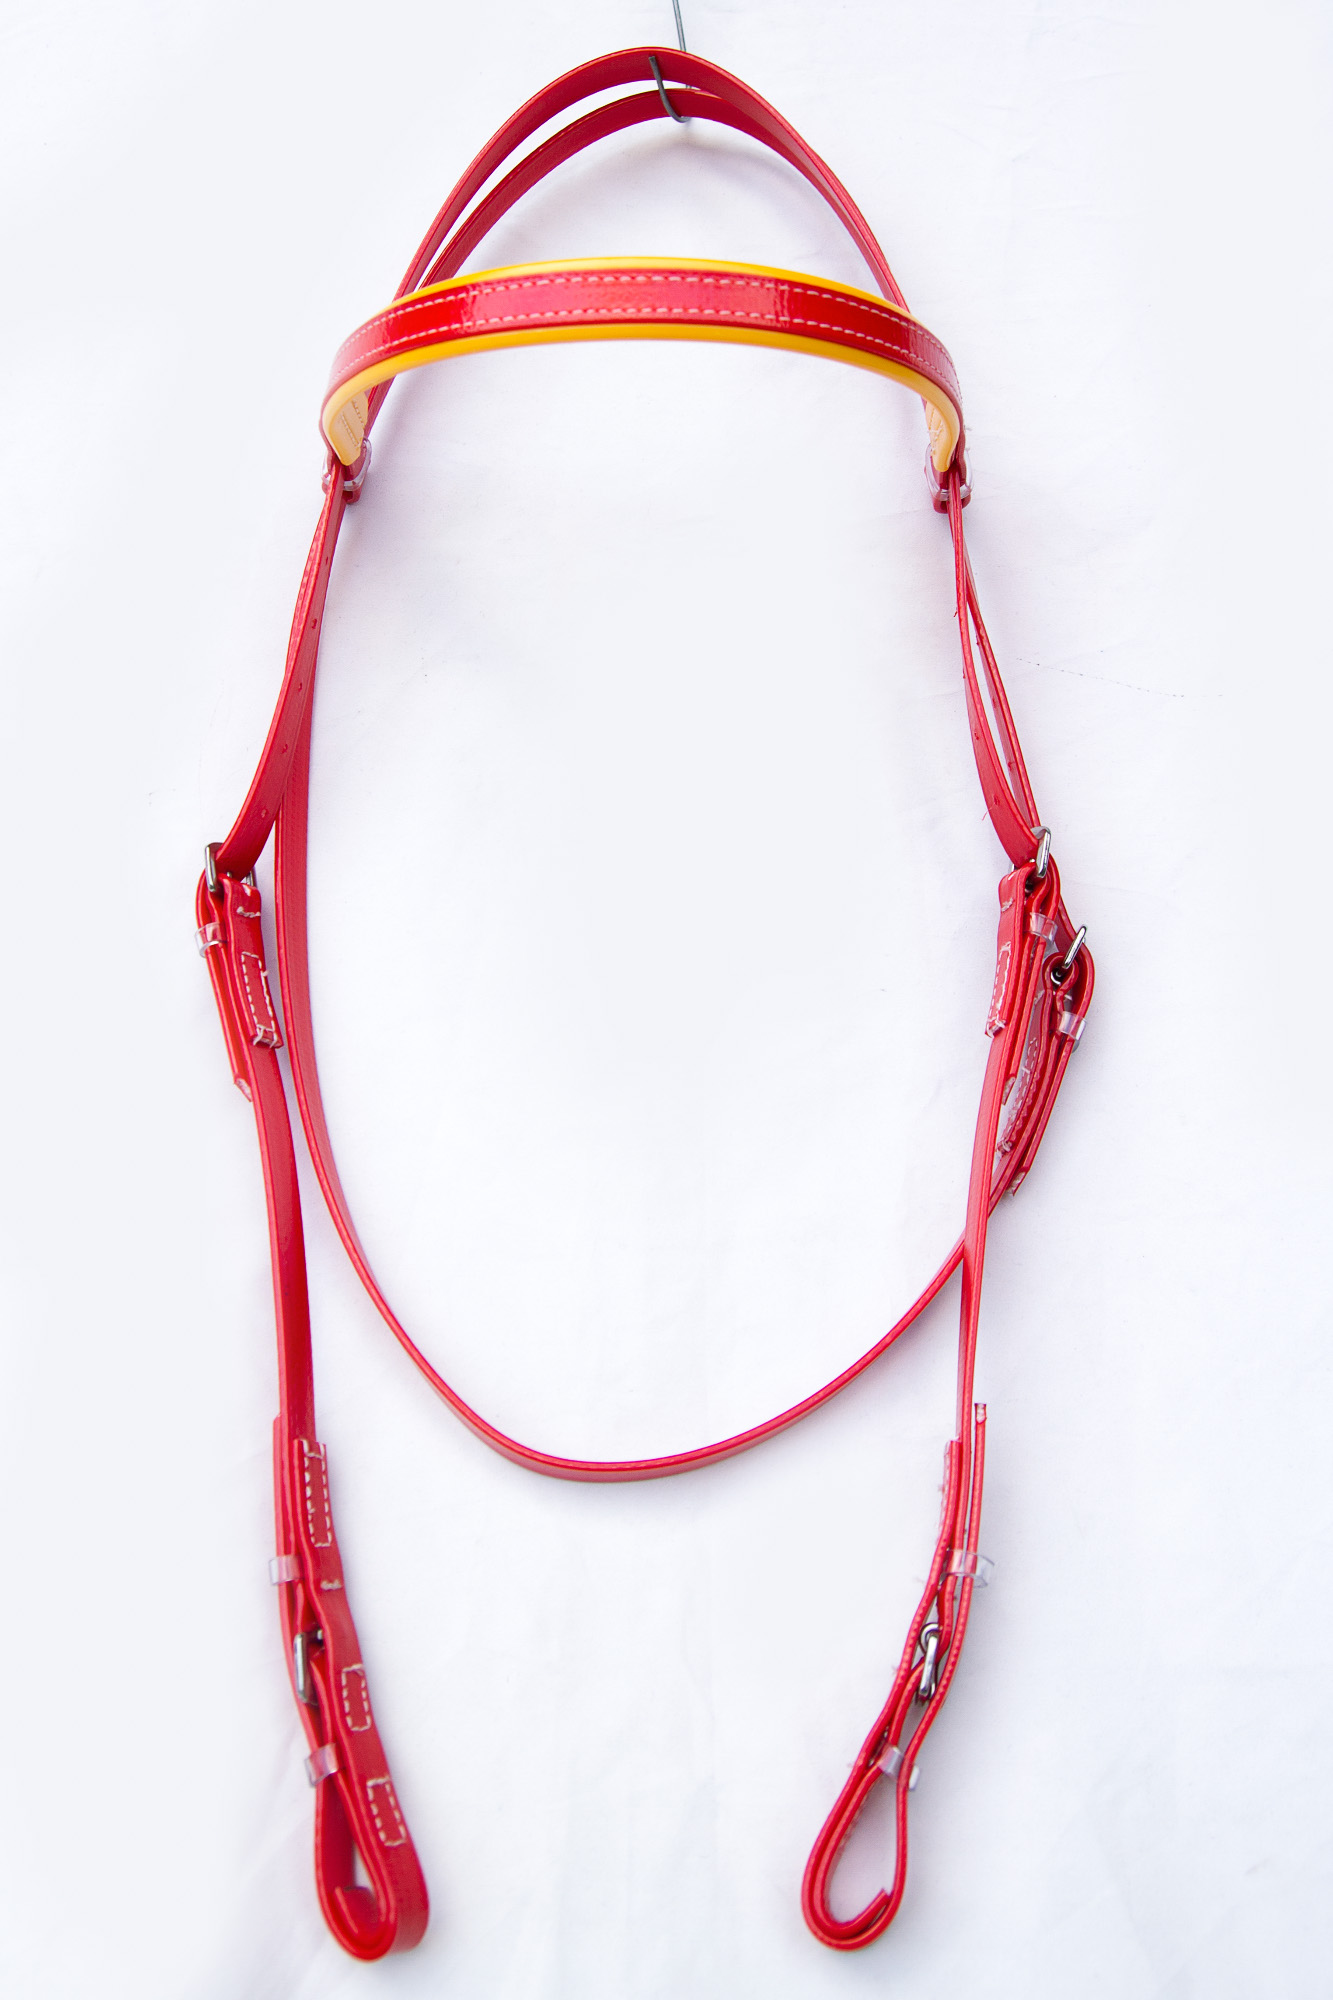 Bridle-Snaffle-Red-Yellow-1.jpg